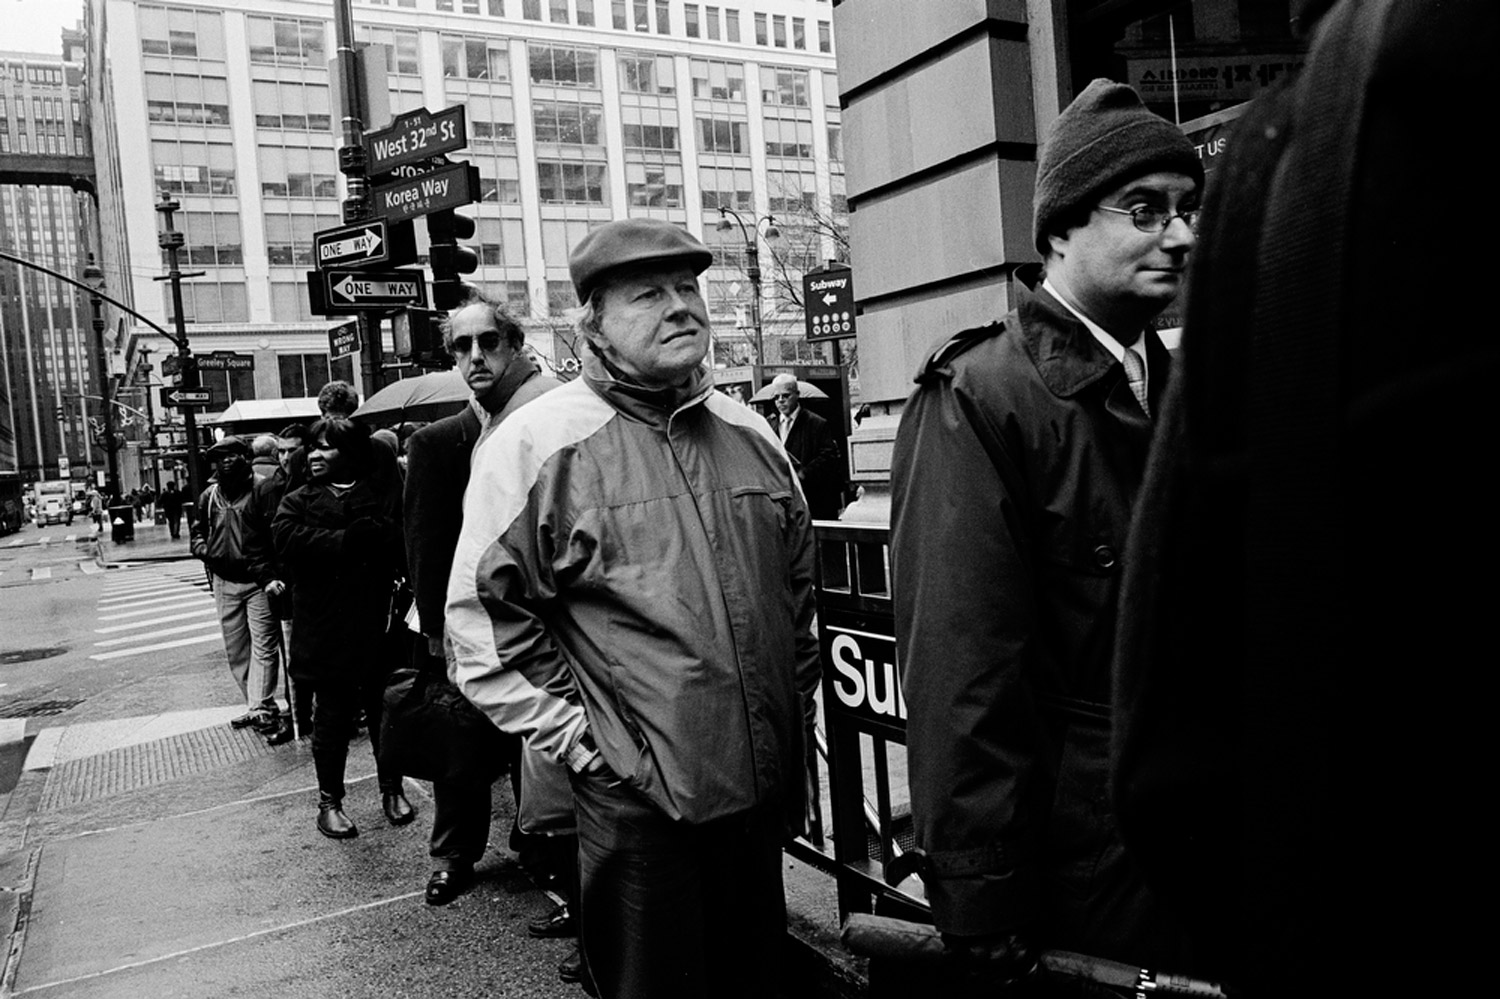 People line up to enter the NYCHires Job Fair at the Radisson Martinique On Broadway Hotel, New York, New York                               February 24, 2010.                                                               The main thing I found most inspiring about the FSA photographers is the way they photographed the faces of the American people with such dignity,  Suau says,  regardless of their personal situation. Respect is almost always paid to the subjects; the people in the photographs appear strong and steadfast. Often the subjects are so beautiful that you can view them again and again without them losing their magnetism or appeal. But they are not sentimental or glossy, as portraits today can be.